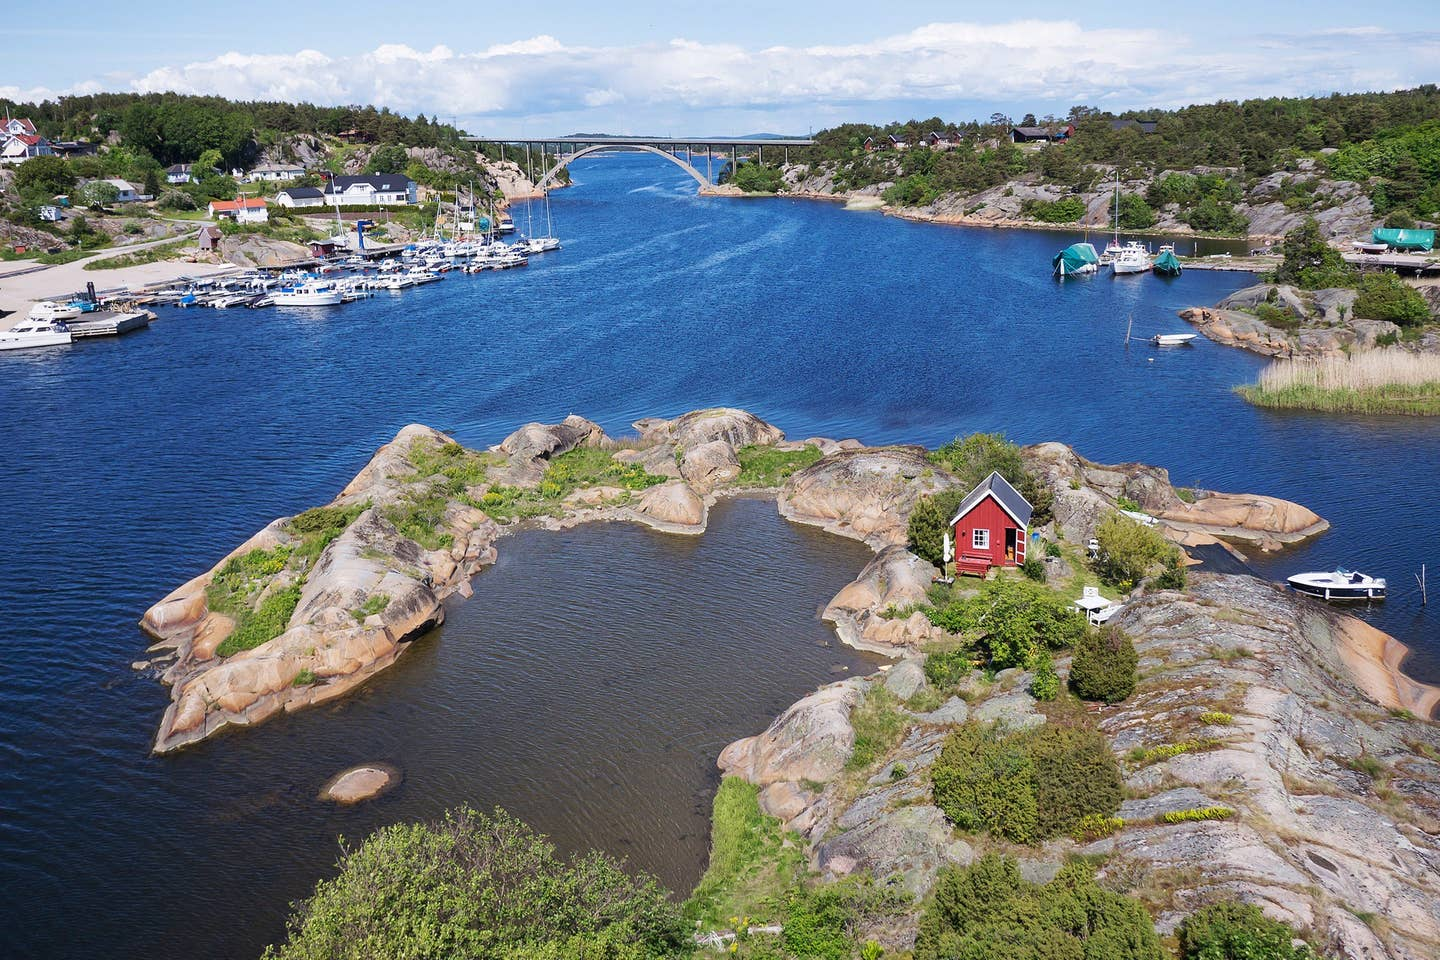 Private island rental Norway